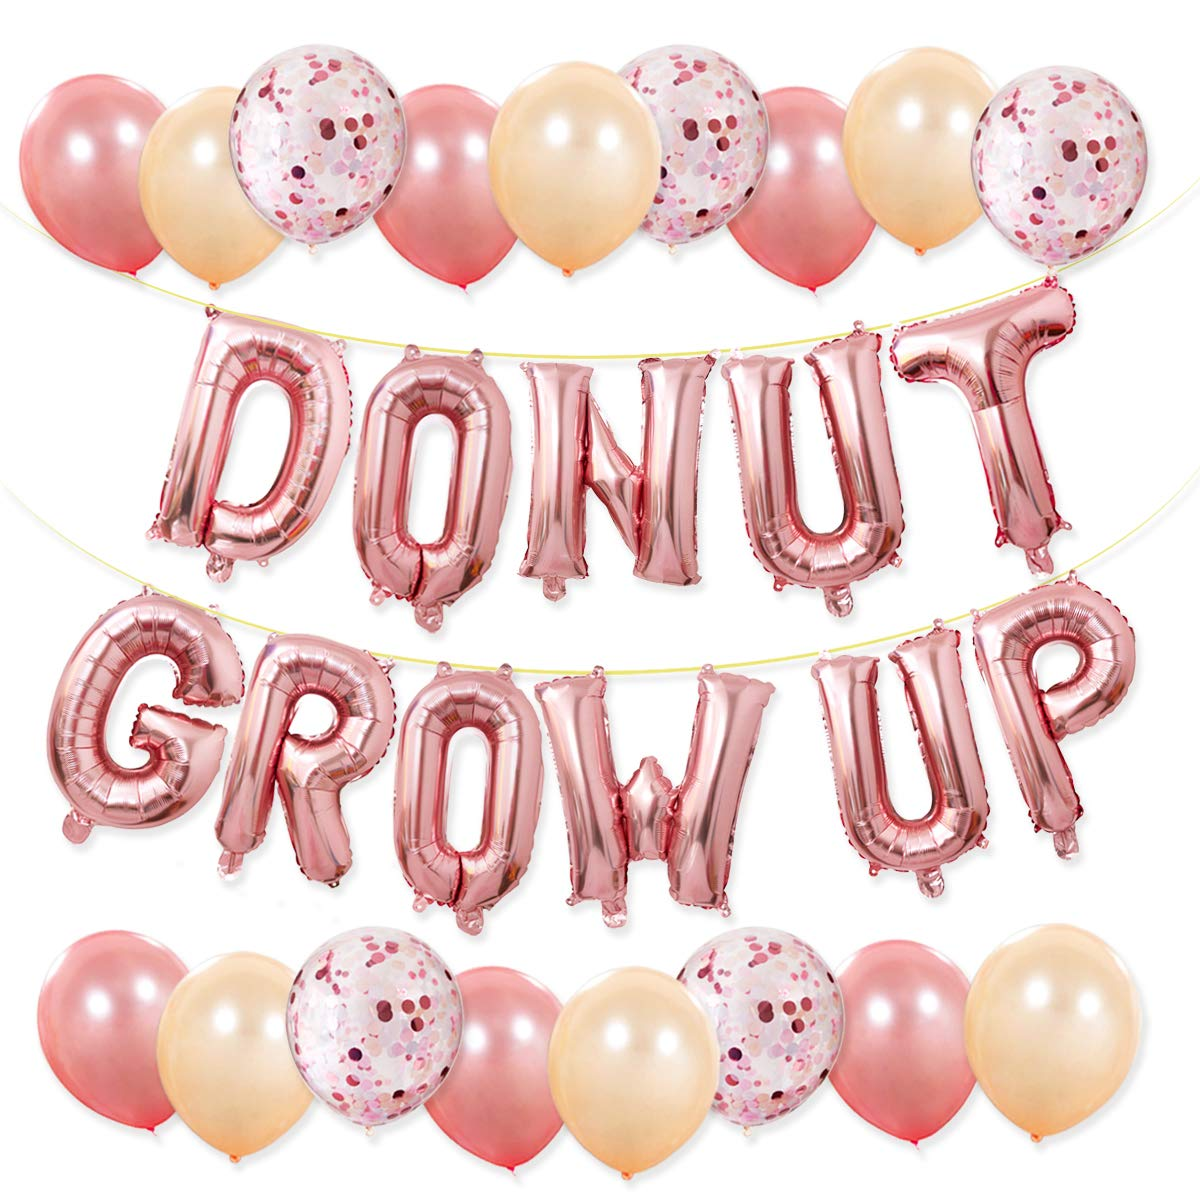 Donut Party Supplies - Donut Grow Up Balloons Banner Rose Gold, 20 Latex Balloons with 5 Confetti Balloons for Baby Shower Donut Grow Up Birthday Party Decorations Haptda